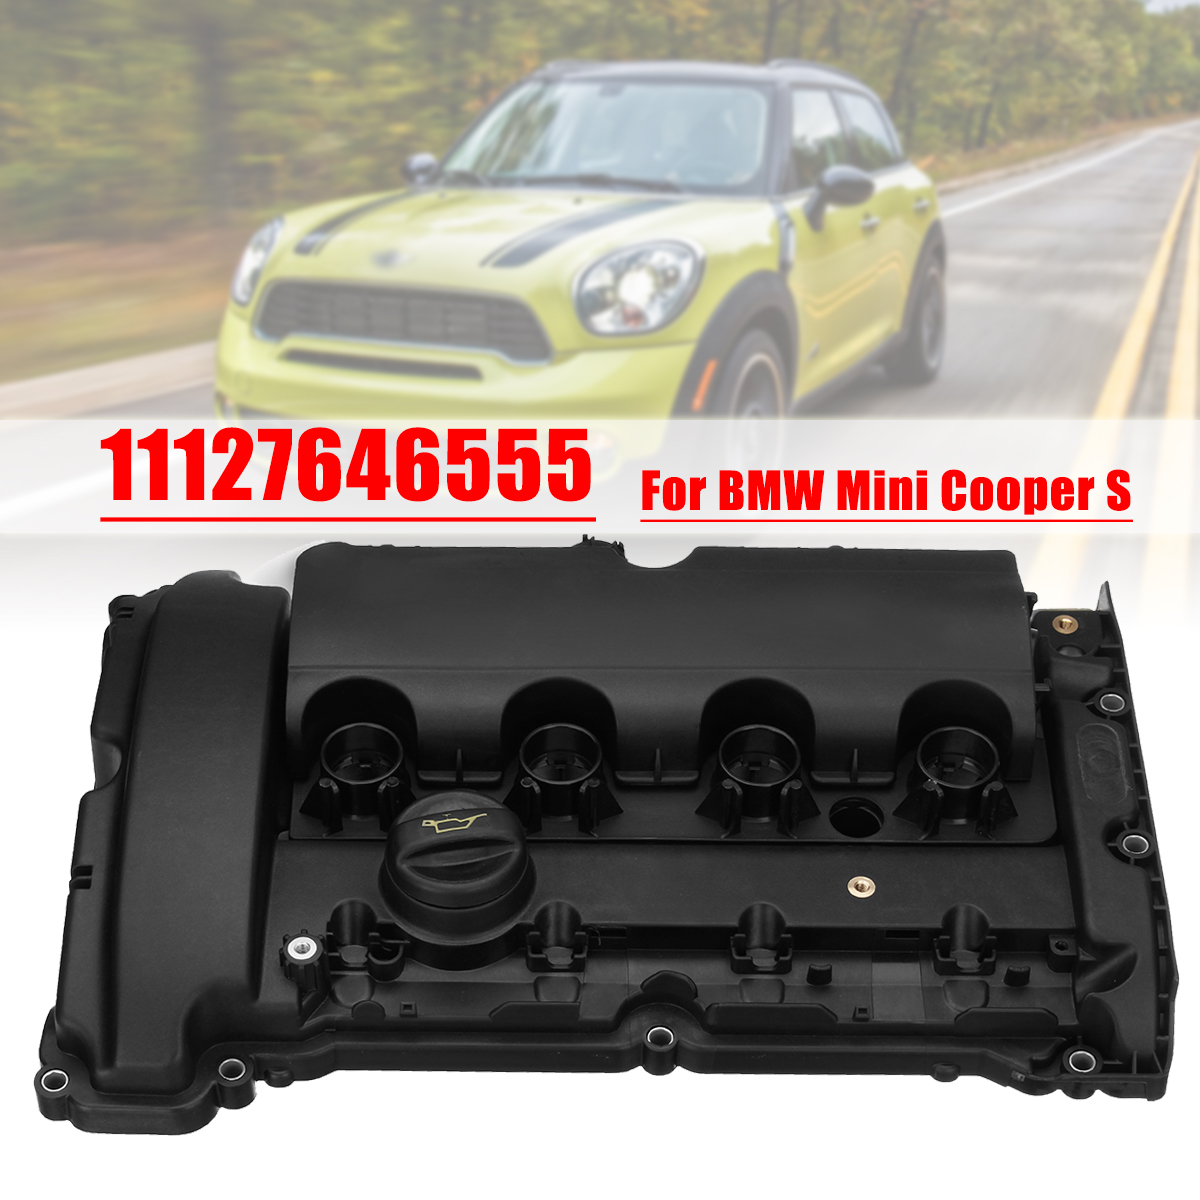 Engine Valve Cover Gasket Set for BMW for Mini Cooper S R55 R56 R57 R58 11127646555